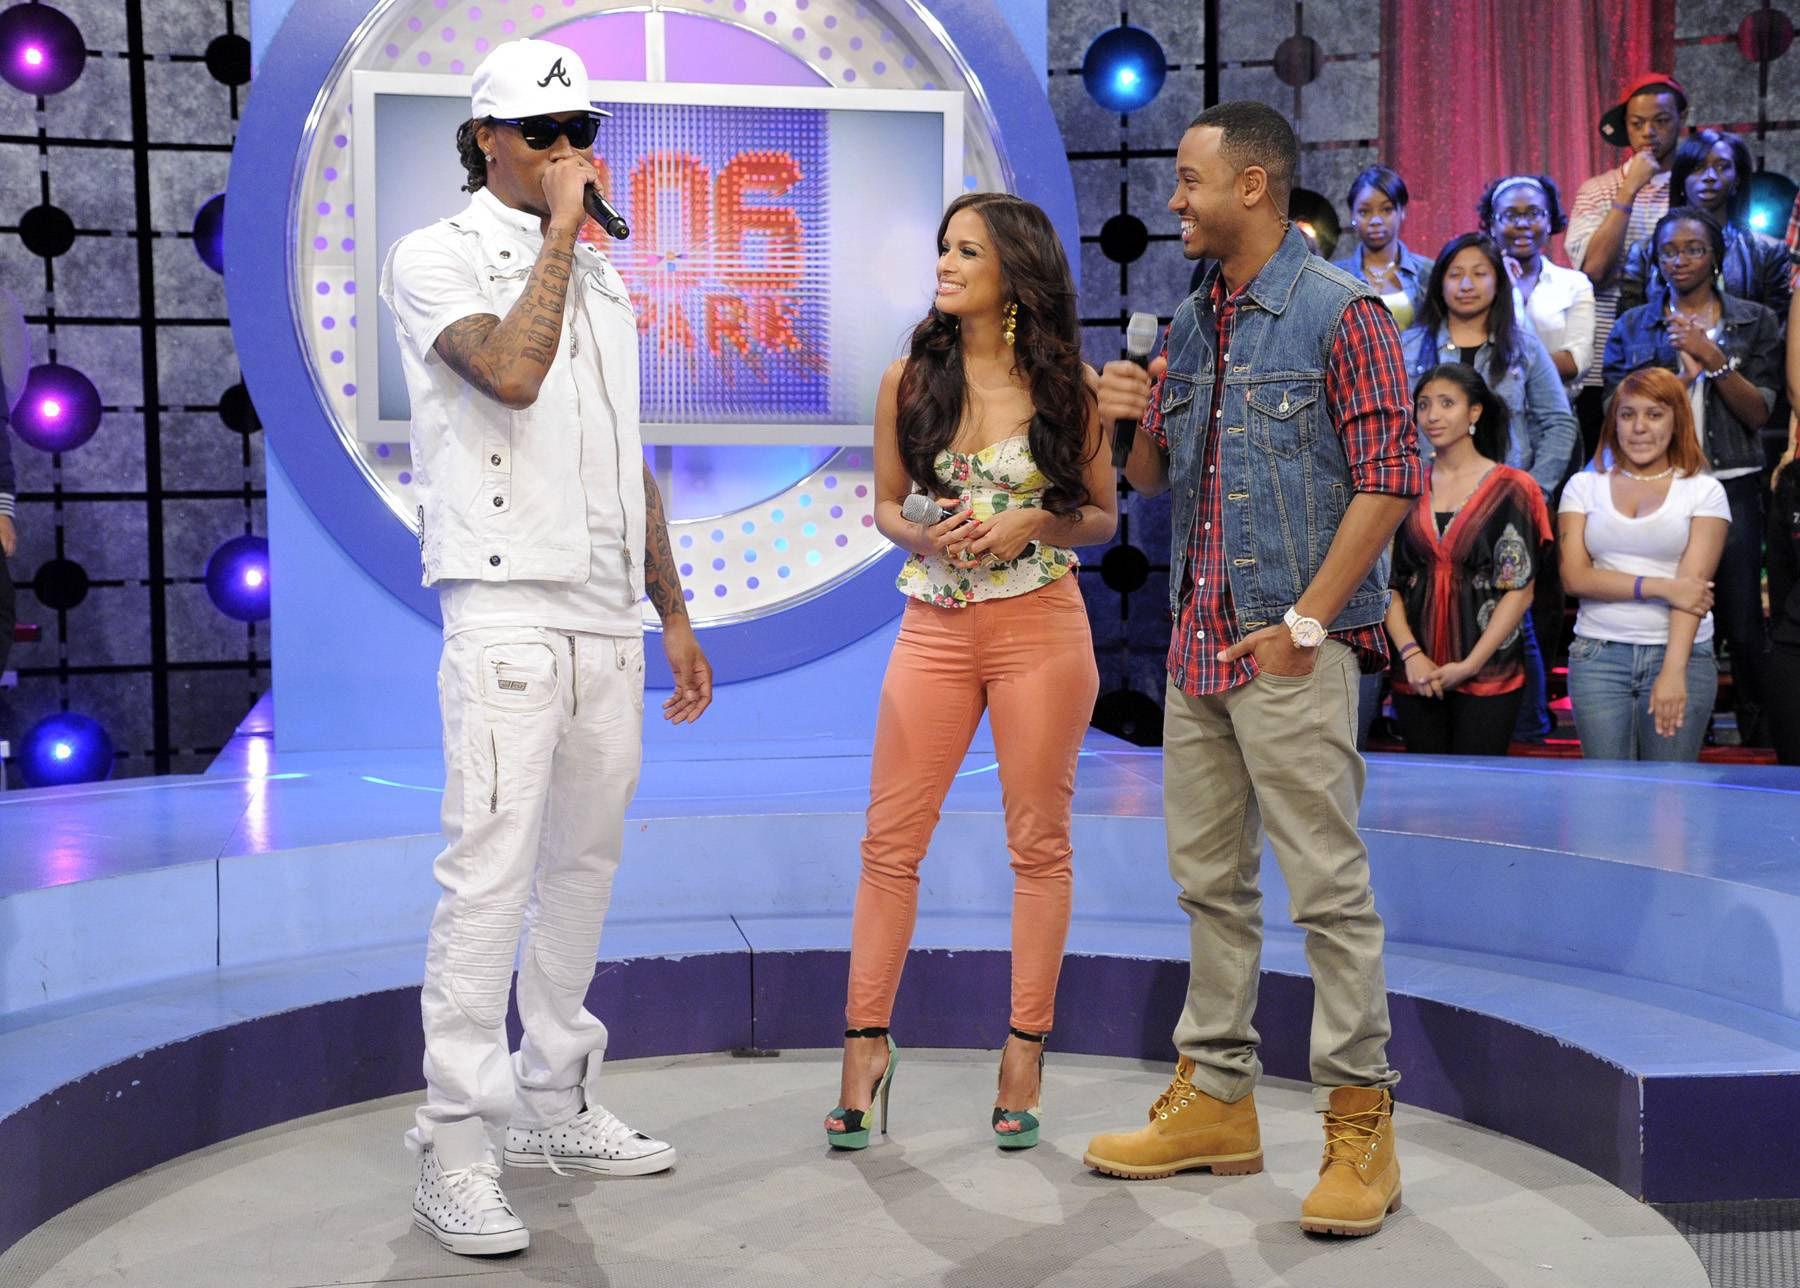 What The Future Holds - Future with Rocsi Diaz and Terrence J at 106 & Park, April 20, 2012. (Photo: John Ricard / BET)